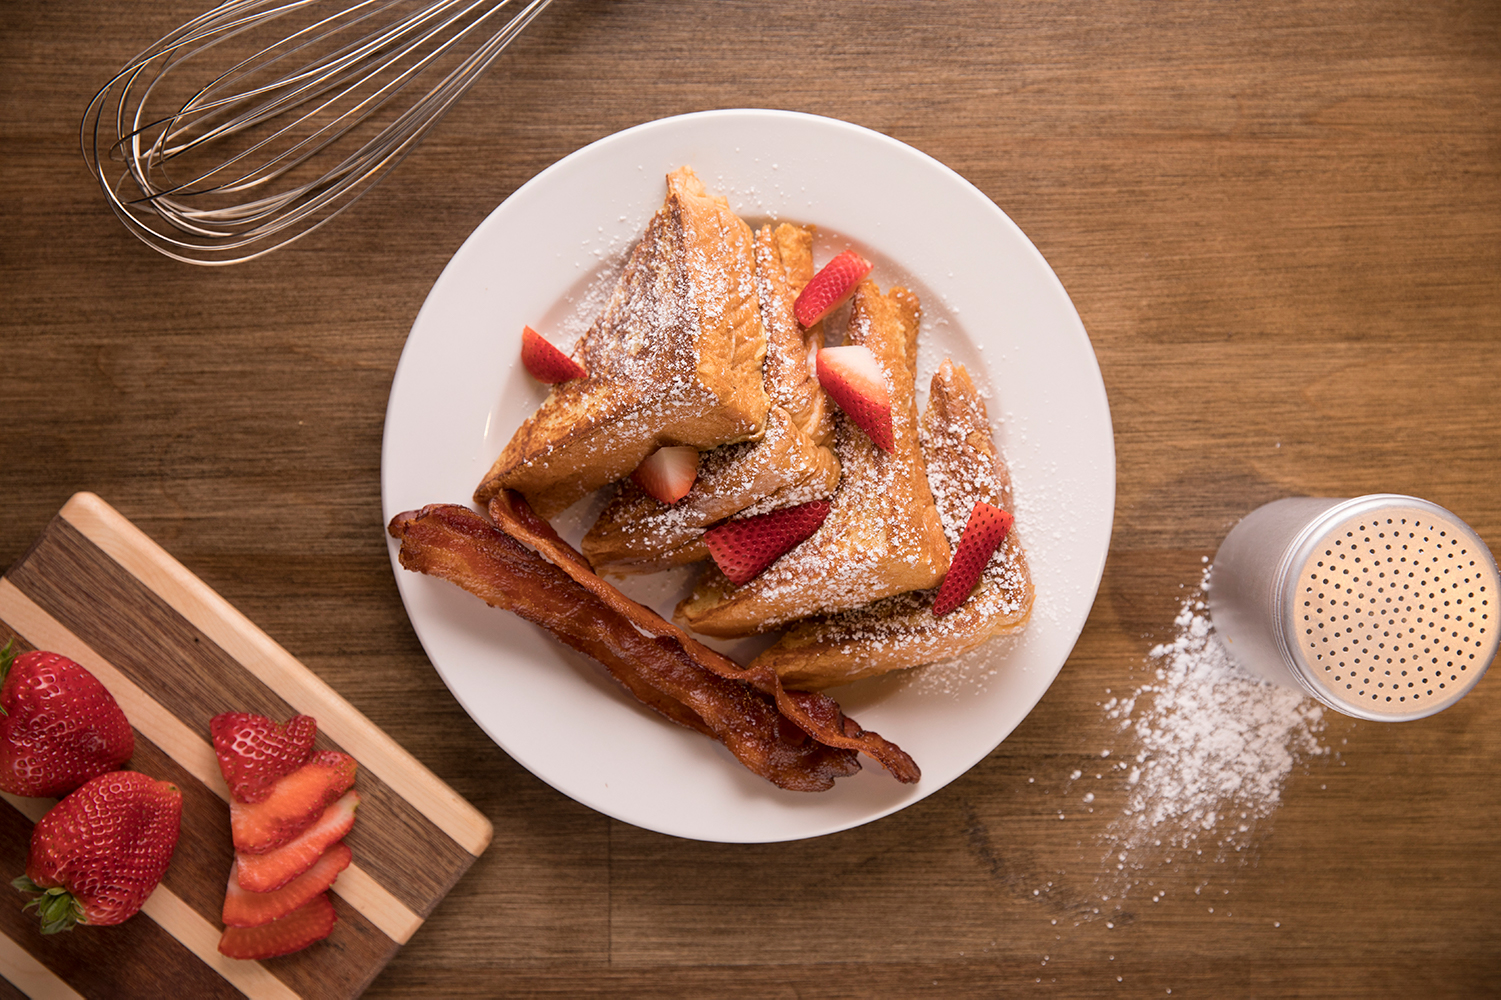 French toast stuffed with strawberries and topped with powdered sugar on a wooden table